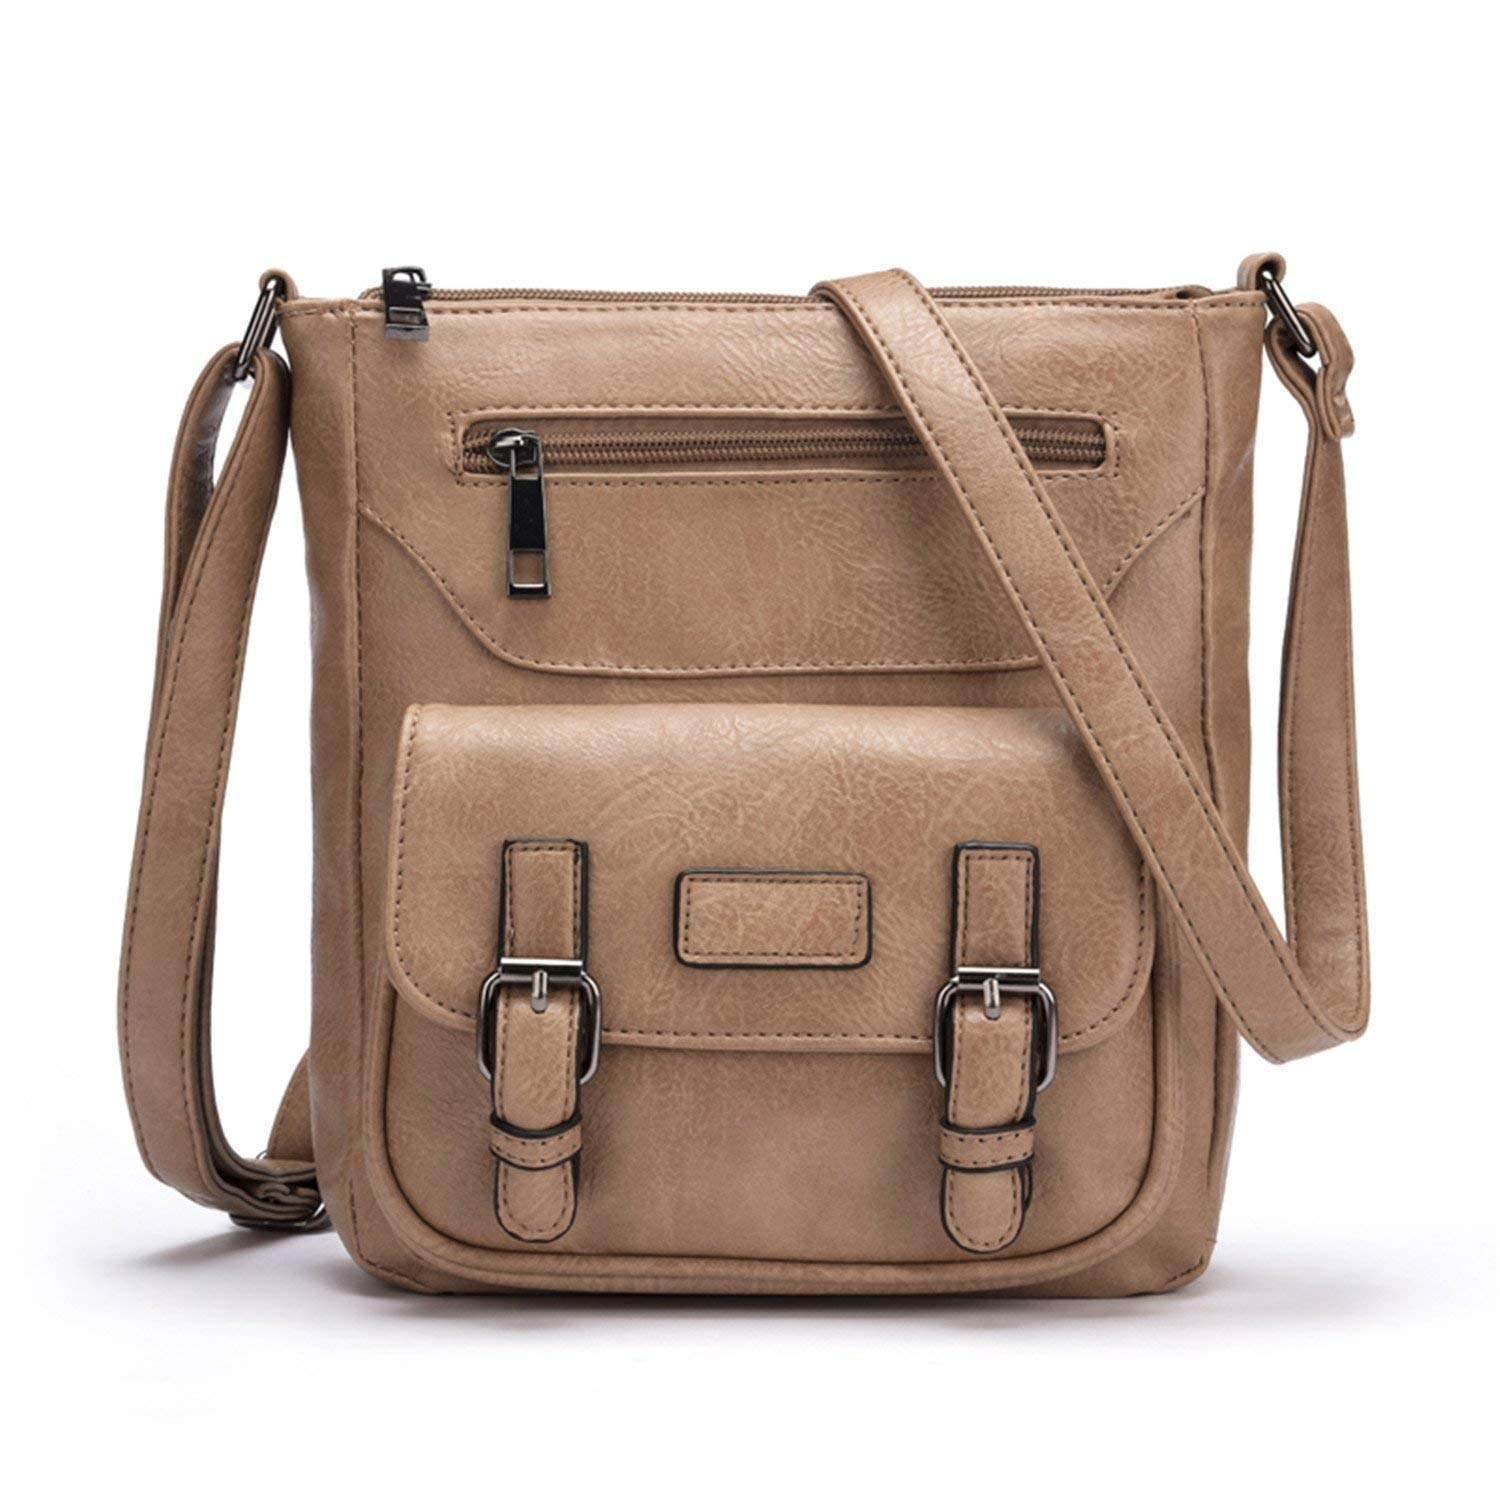 Lady Retro Single Shoulder New Style Handbag Large Capacity Satchel Bag For provide By Zhao Liang